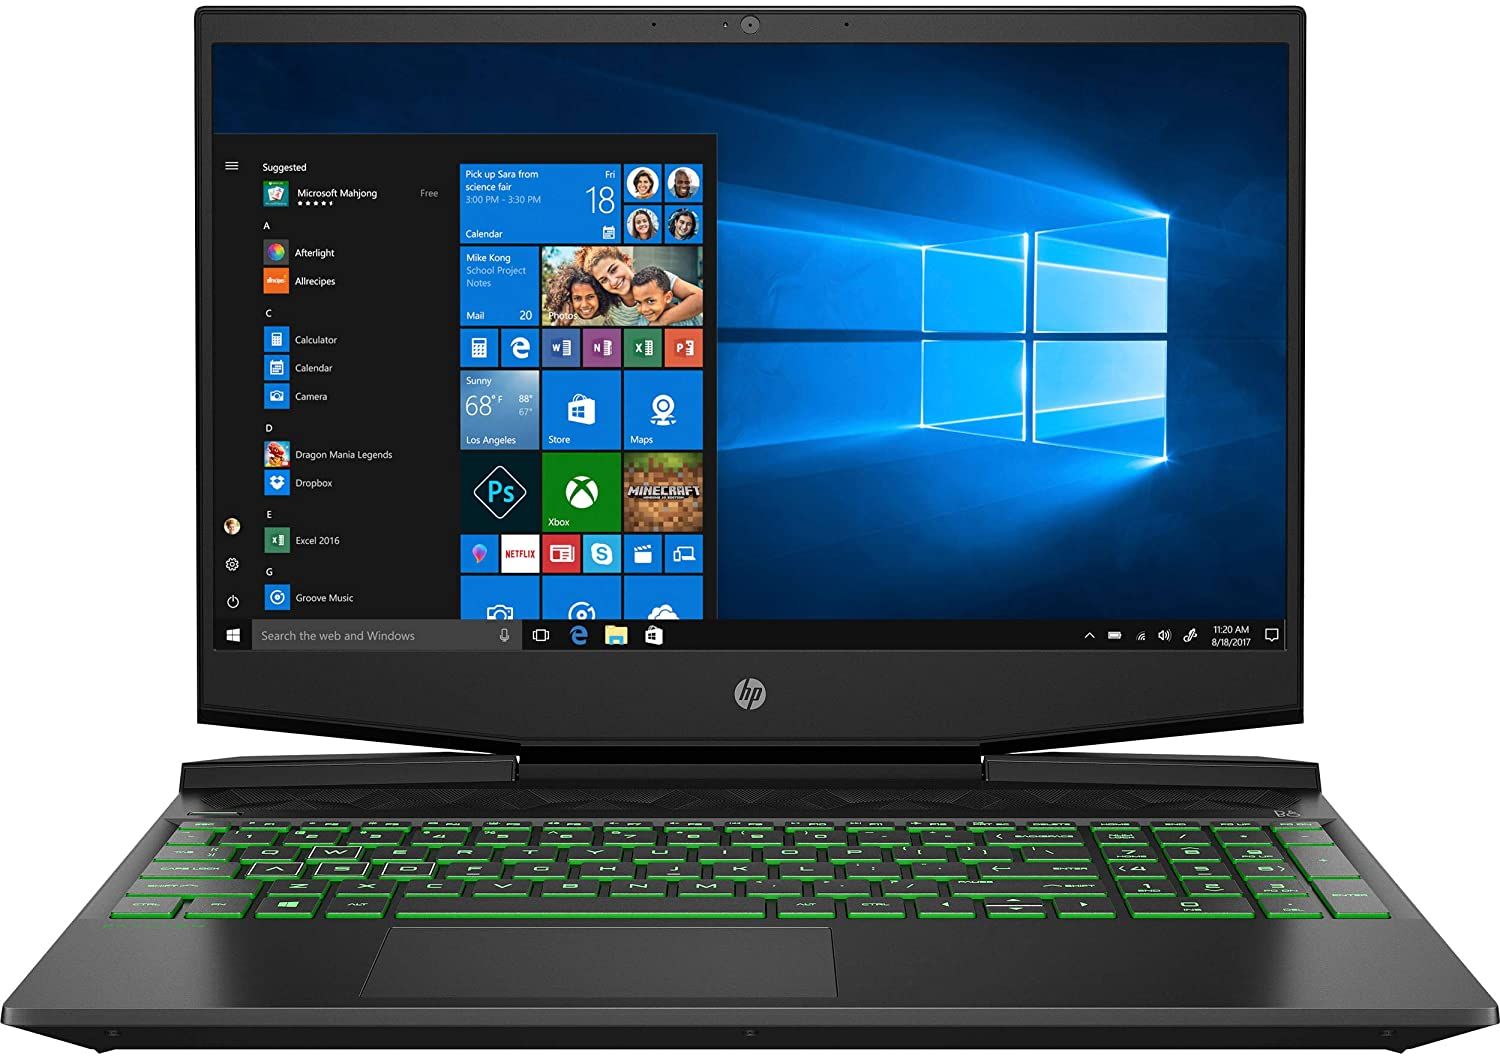 HP Pavilion Gaming 15-Inch Micro-Edge Laptop, Intel Core i5-9300H Processor, NVIDIA GeForce GTX 1650 (4 GB), 8 GB SDRAM, 256 GB SSD, Windows 10 Home (Shadow Black/Acid Green)